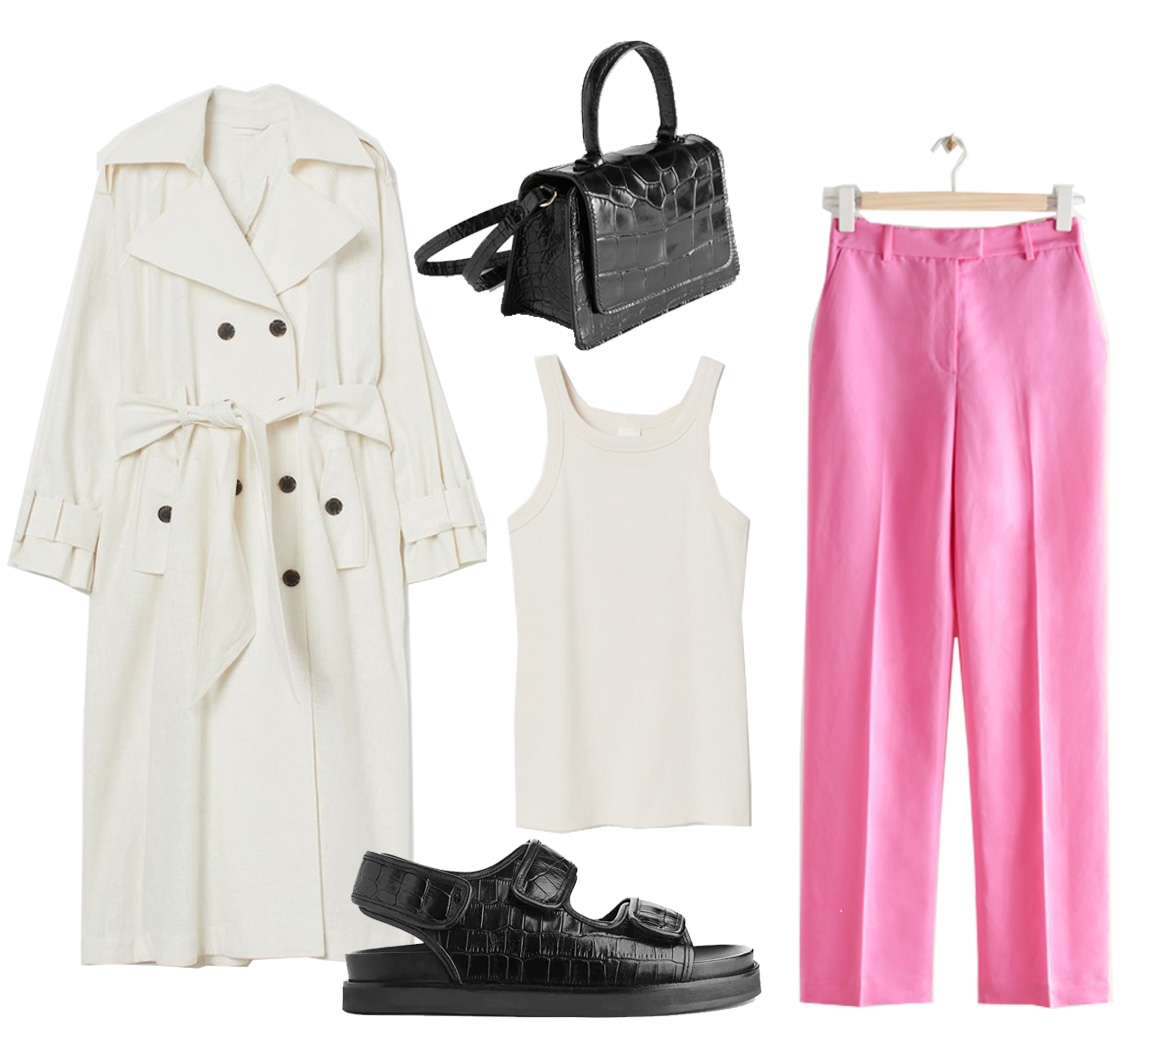 pink trousers outfit ideas 2021